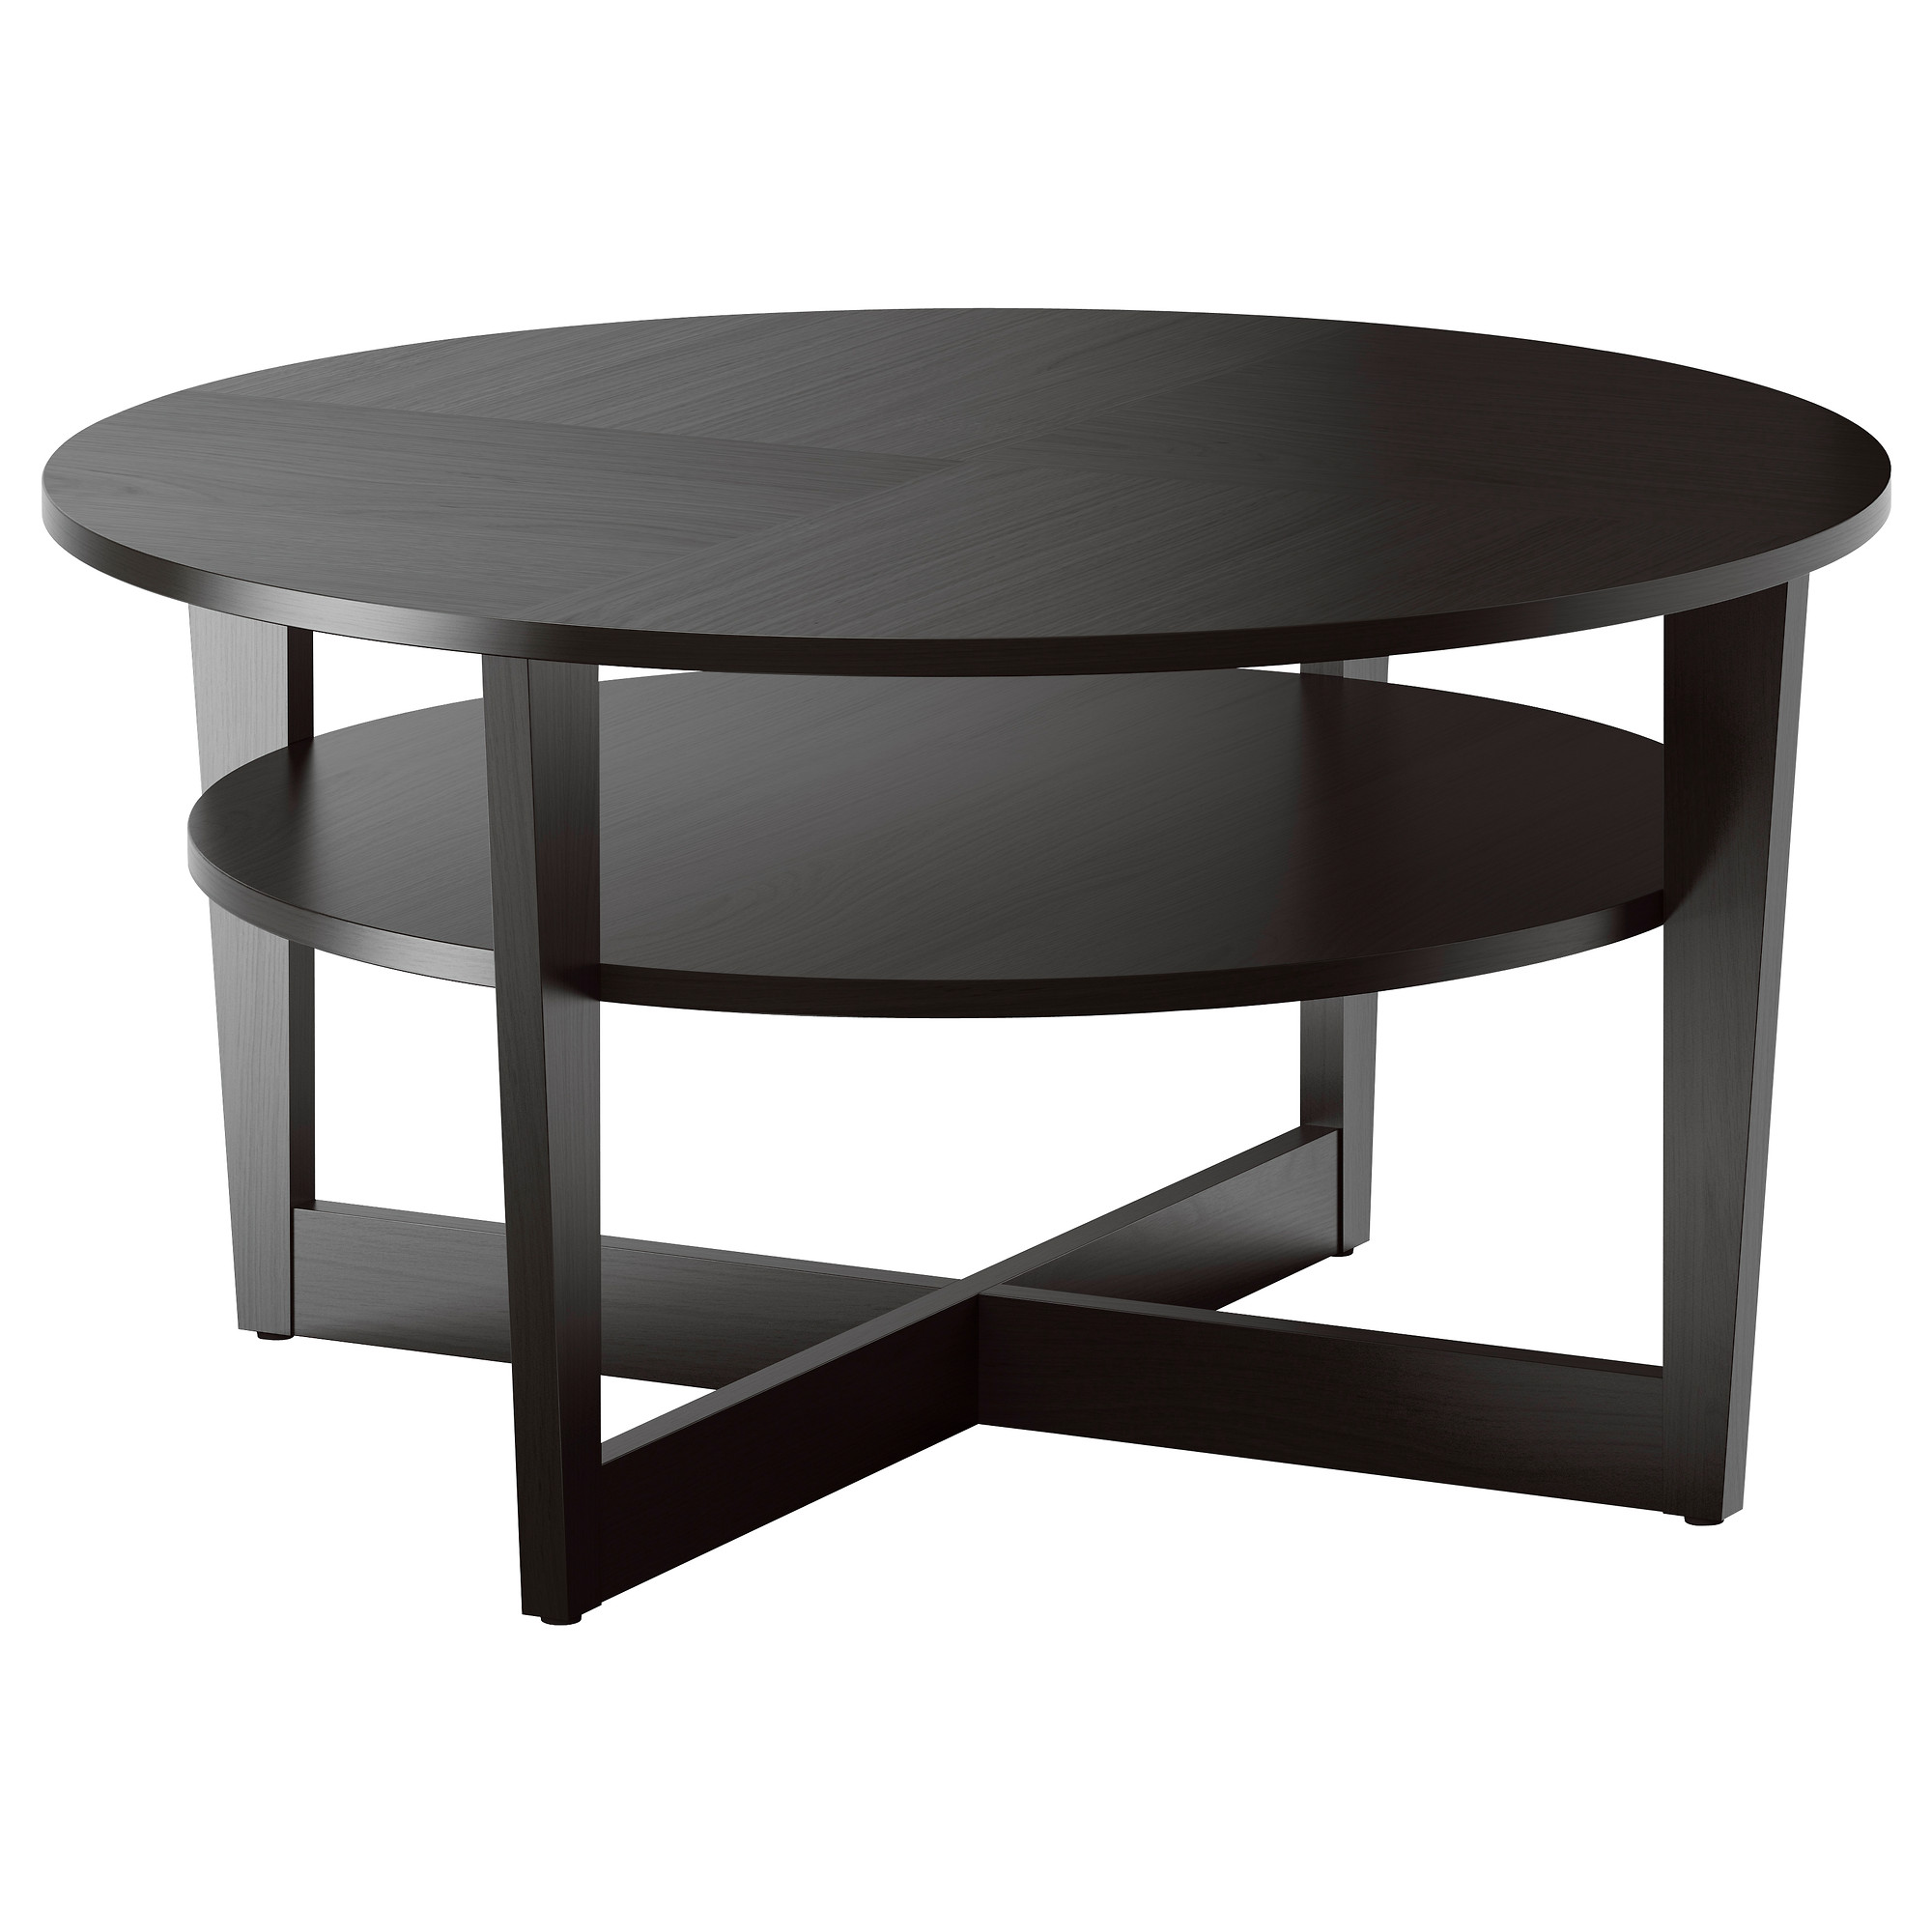 10 Best Collection of Modern Coffee Tables